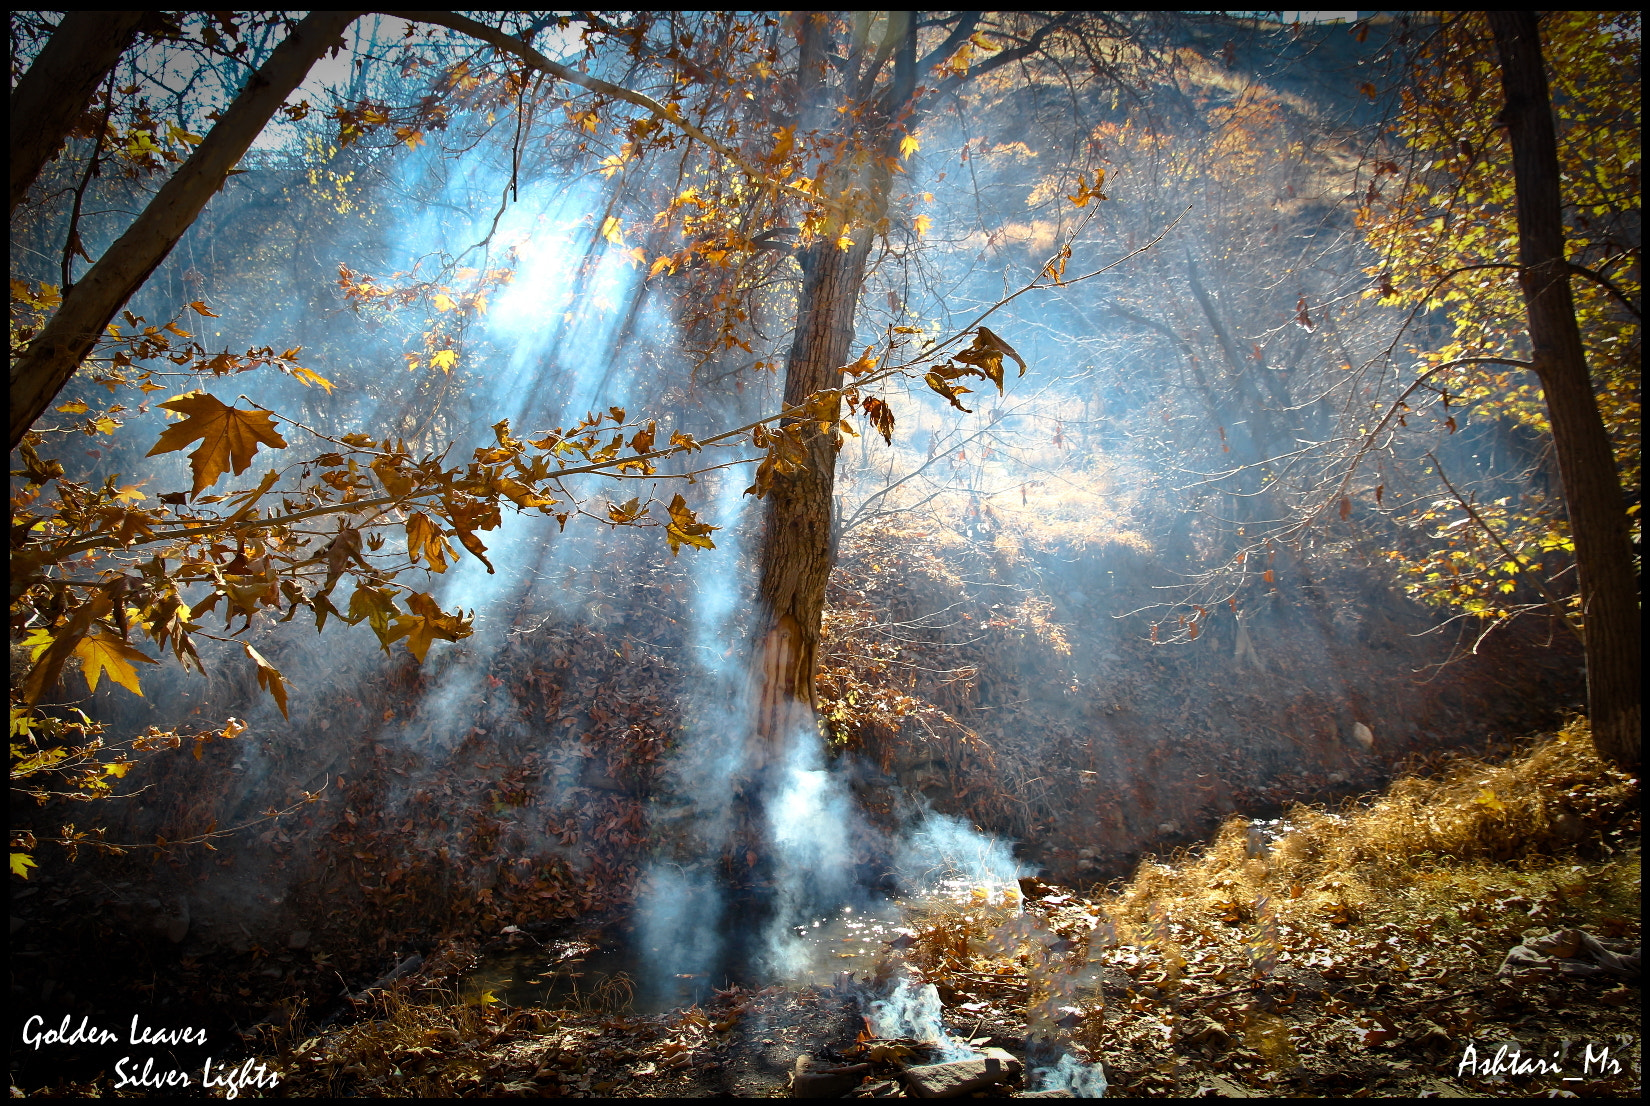 Photograph Golden Leaves Silver Lights  by Mr Ashtari on 500px